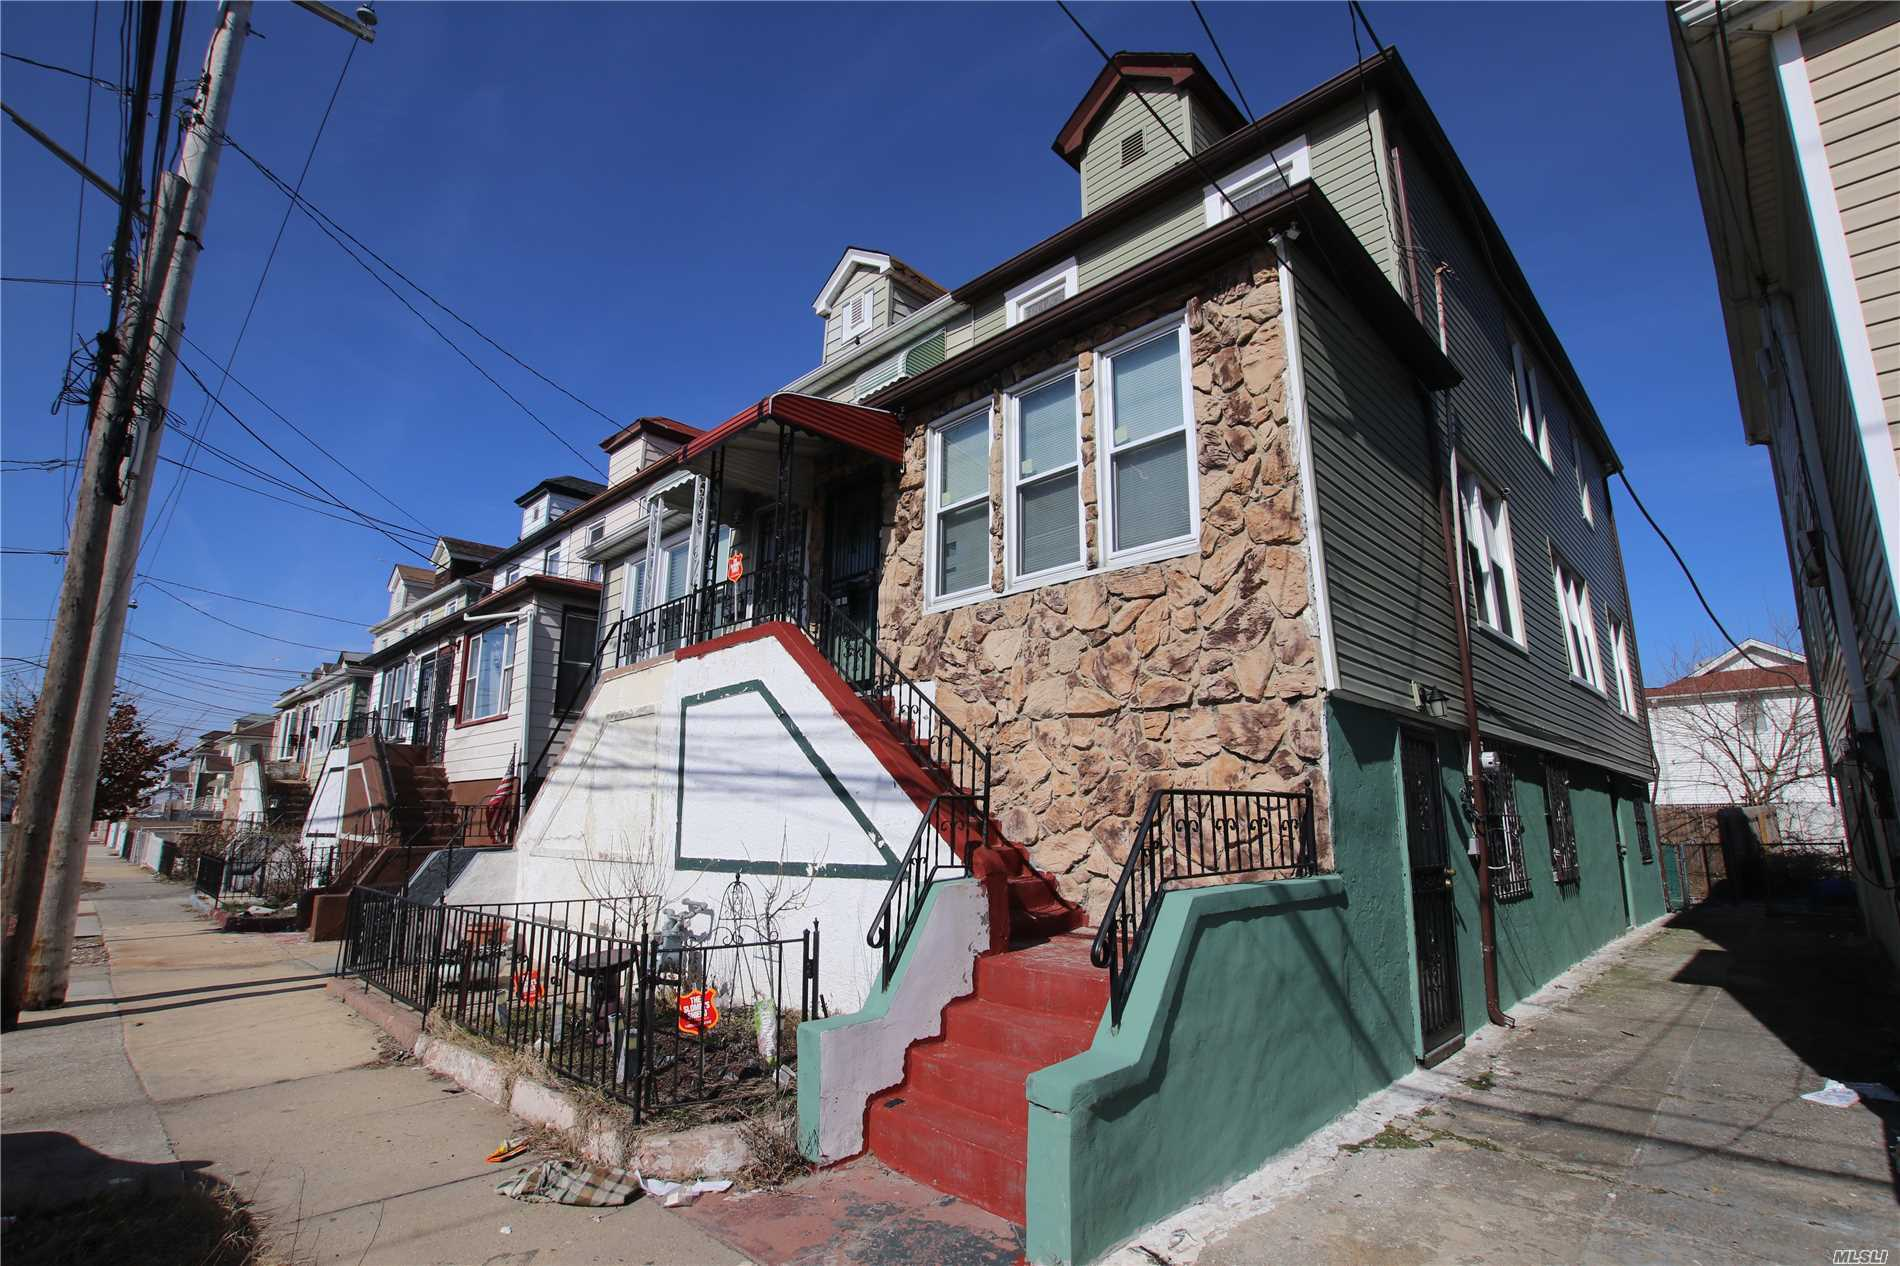 Great Semi-Detached House In The Rockaways, This Area Is Heavily Up And Coming. Imagine Living Steps From The Beach And Wildlife Sanctuary's. Act Fact Before This House Sells.